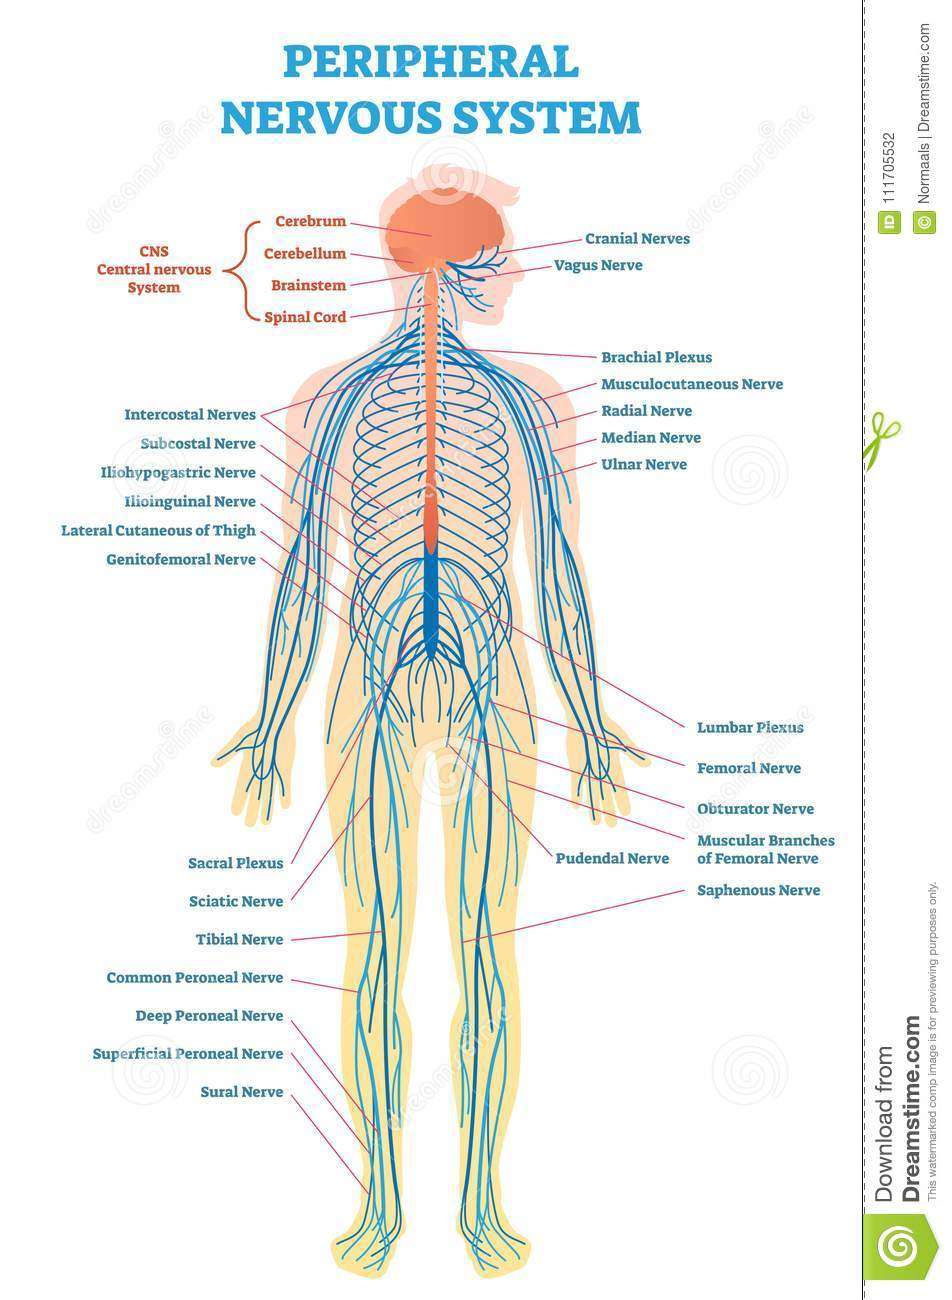 hight resolution of peripheral nervous system medical vector illustration diagram with full body nerve scheme